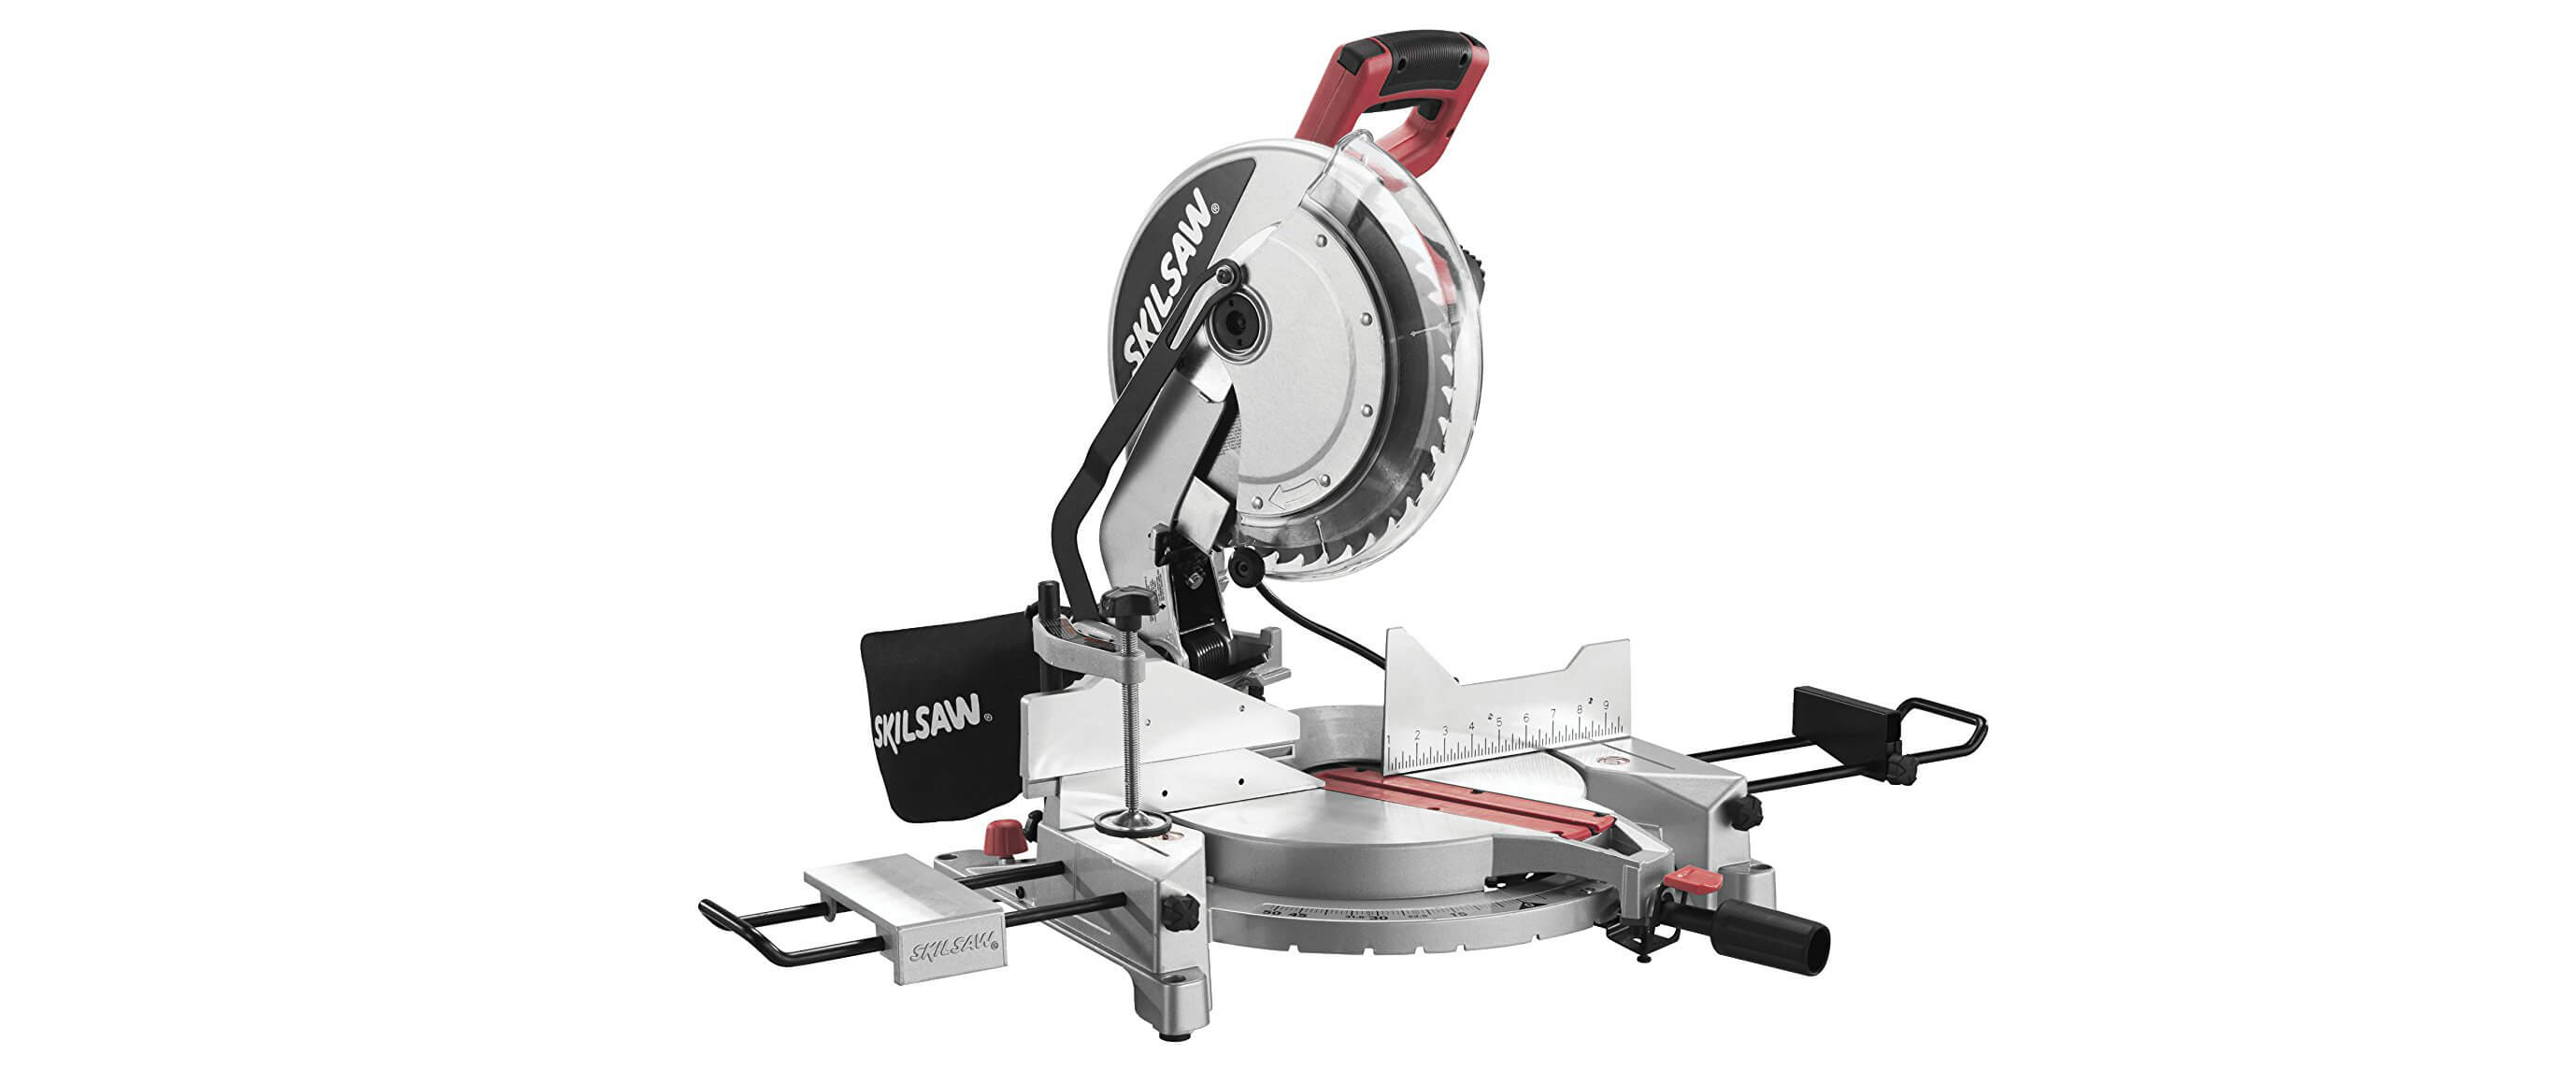 SKIL 3821-01 12-Inch Quick Mount Compound Miter Saw with Laser